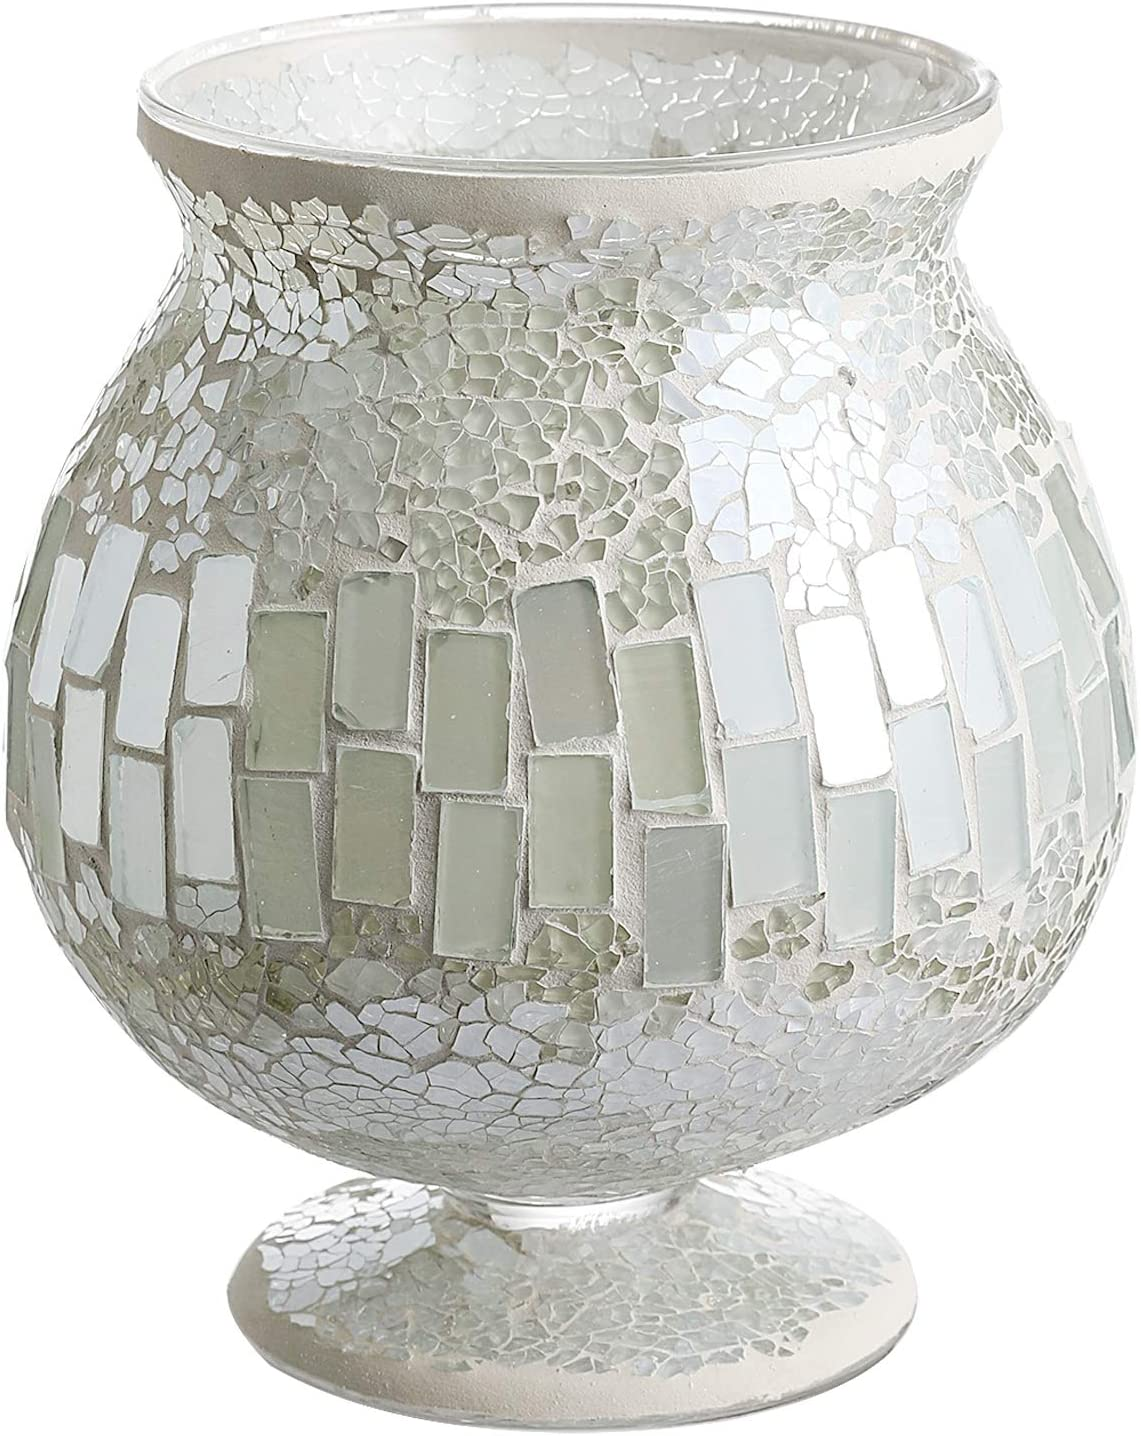 Whole Housewares 6.5 X 7 Inches Mosaic Glass Hurricane, Mosaic Glass Vase for Gifts & Home Decoration (White)